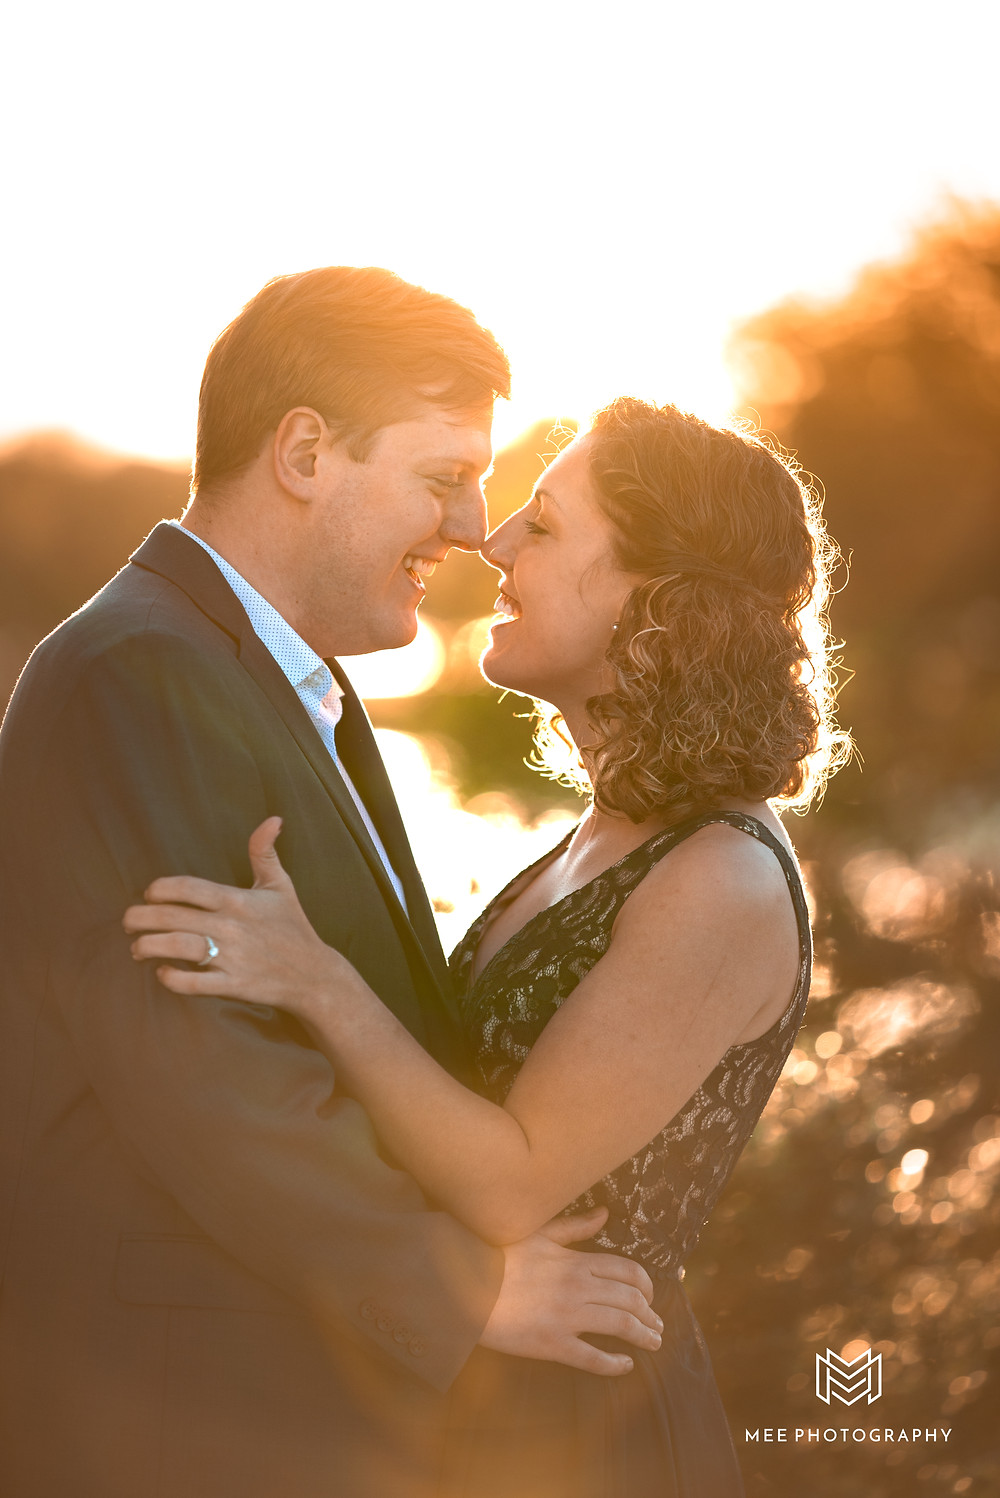 Couple leaning in for a kiss at sunset during their Thomas Jefferson Memorial engagement session